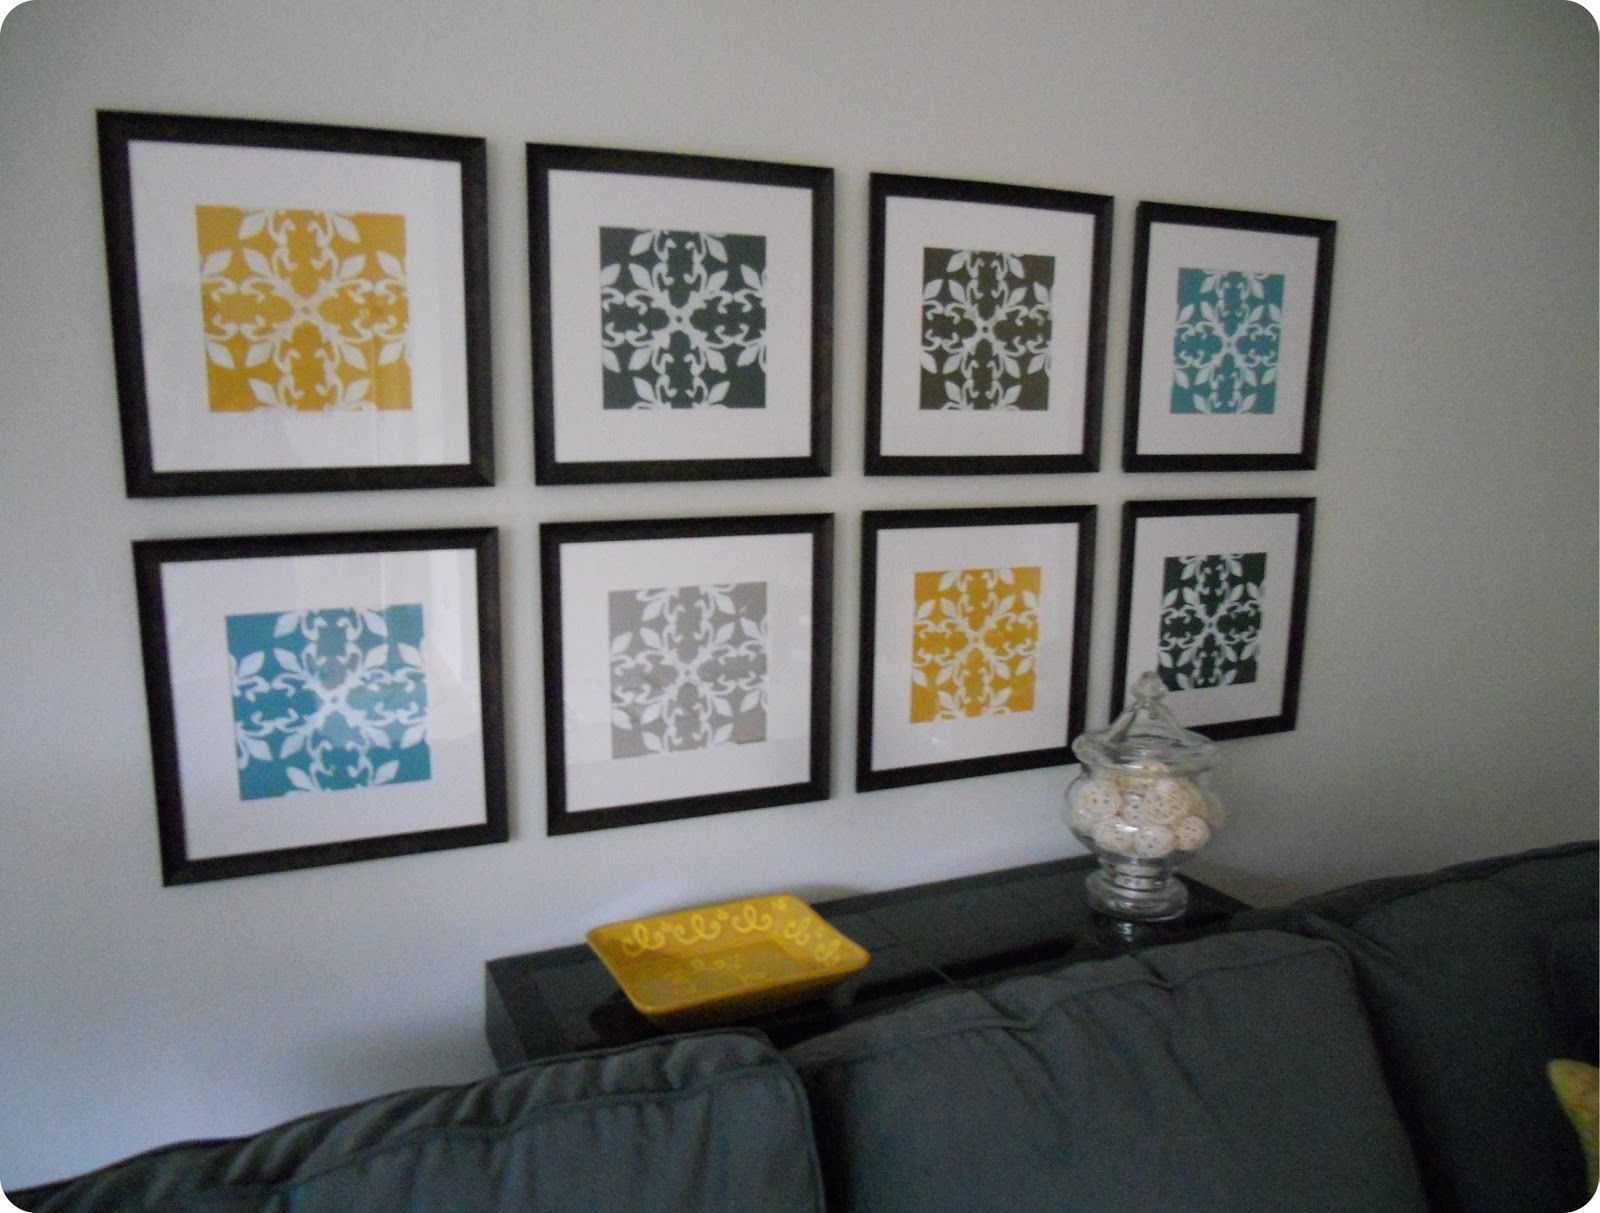 Scrapbook paper cheap - Gallery Wall Made From Inexpensive Frames Scrapbook Paper Stencil And Acrylic Paint